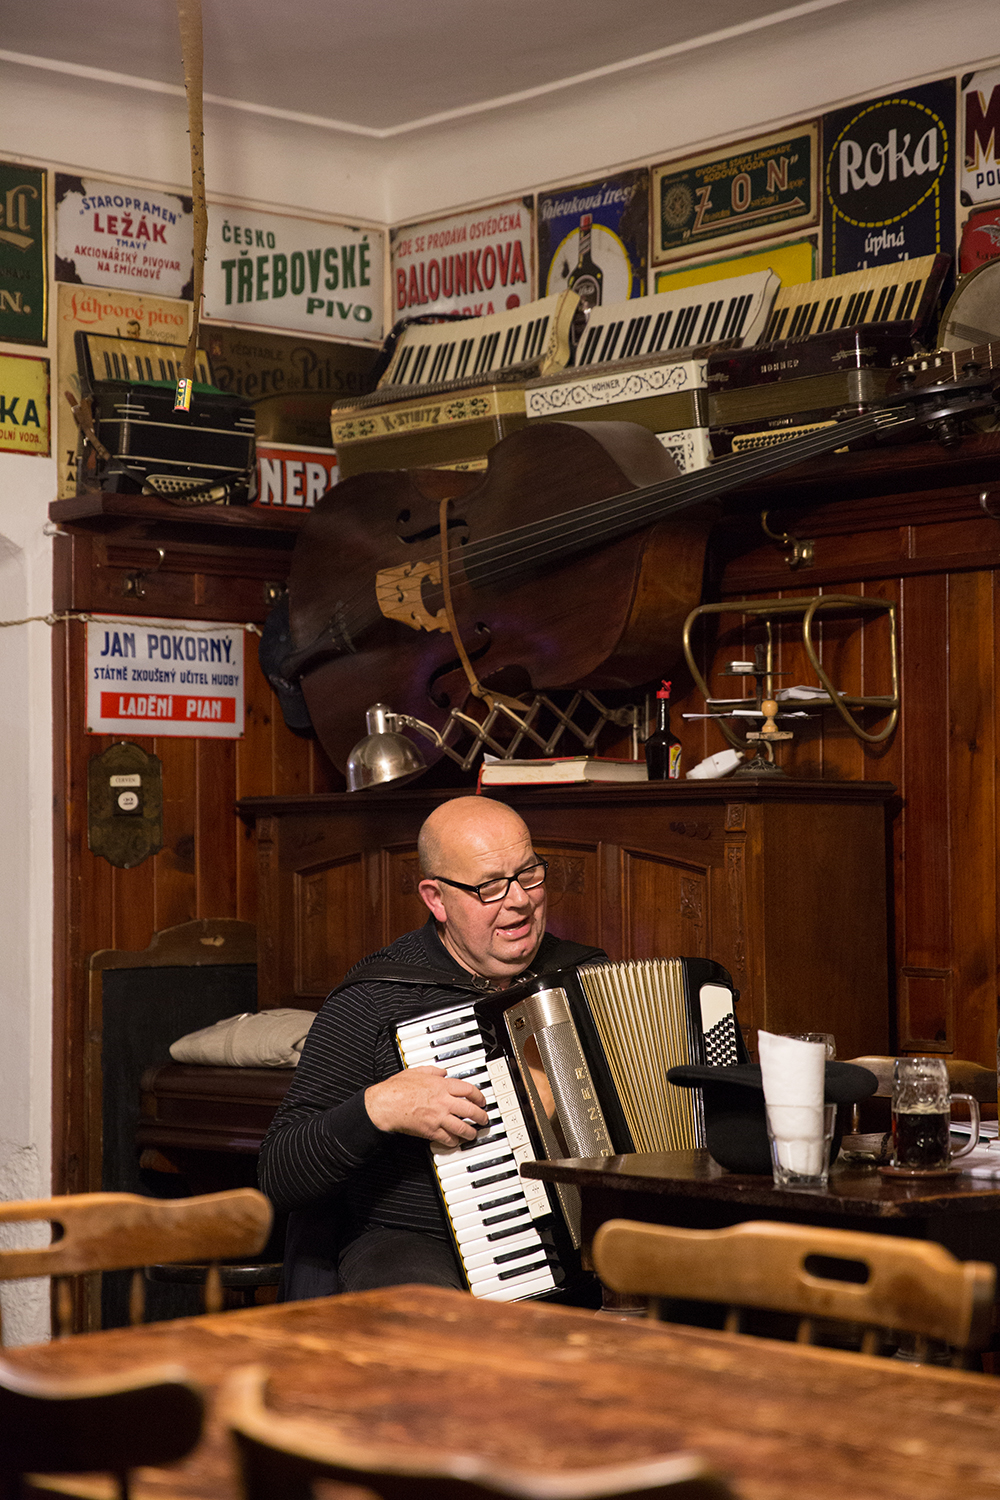 A documentary photograph of a man playing an accordion at a bar in cesky krumlov, Czech Republic